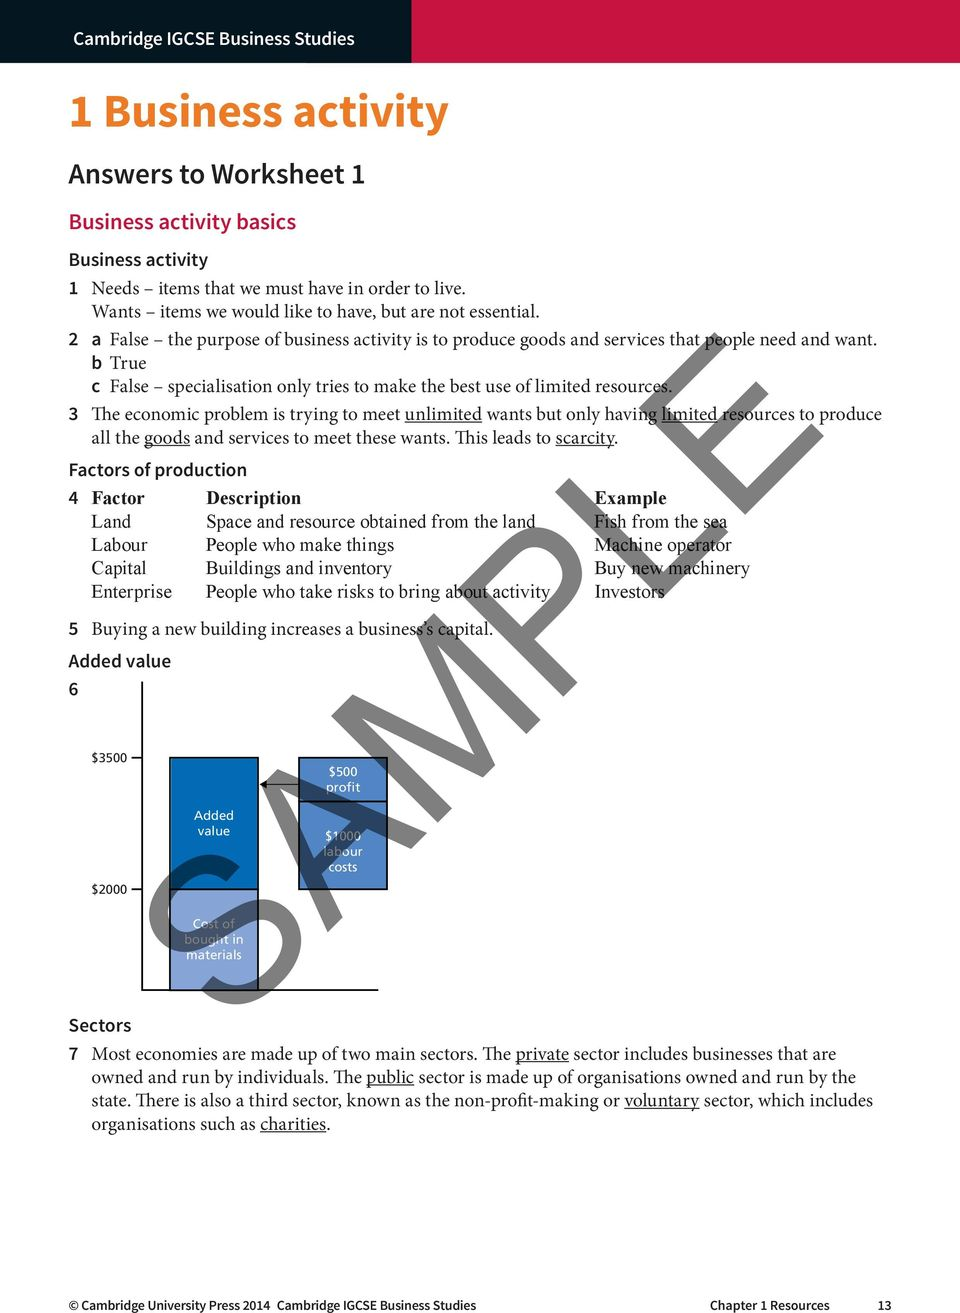 worksheet Factors Of Production Worksheet business studies cambridge igcse teacher s resource medi houghton 3 the economic problem is trying to meet unlimited wants but only having limited resources to